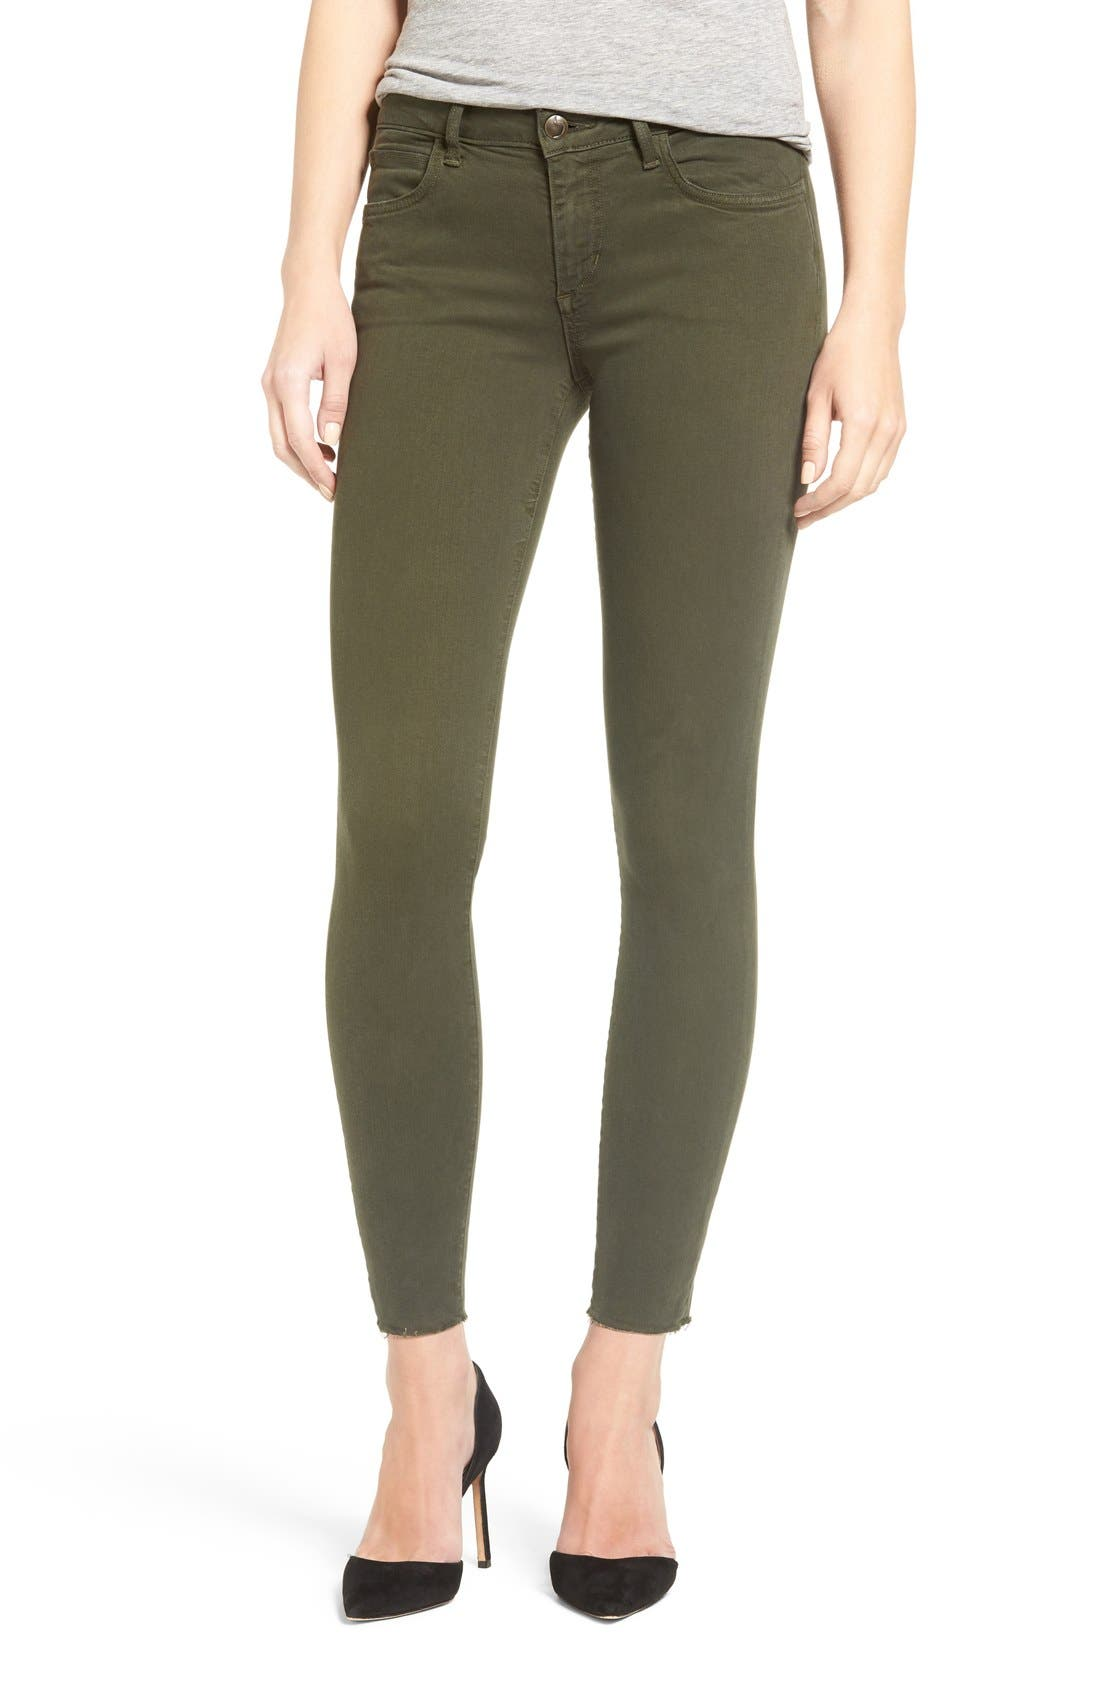 Icon Ankle Skinny Jeans,                         Main,                         color, Military Green